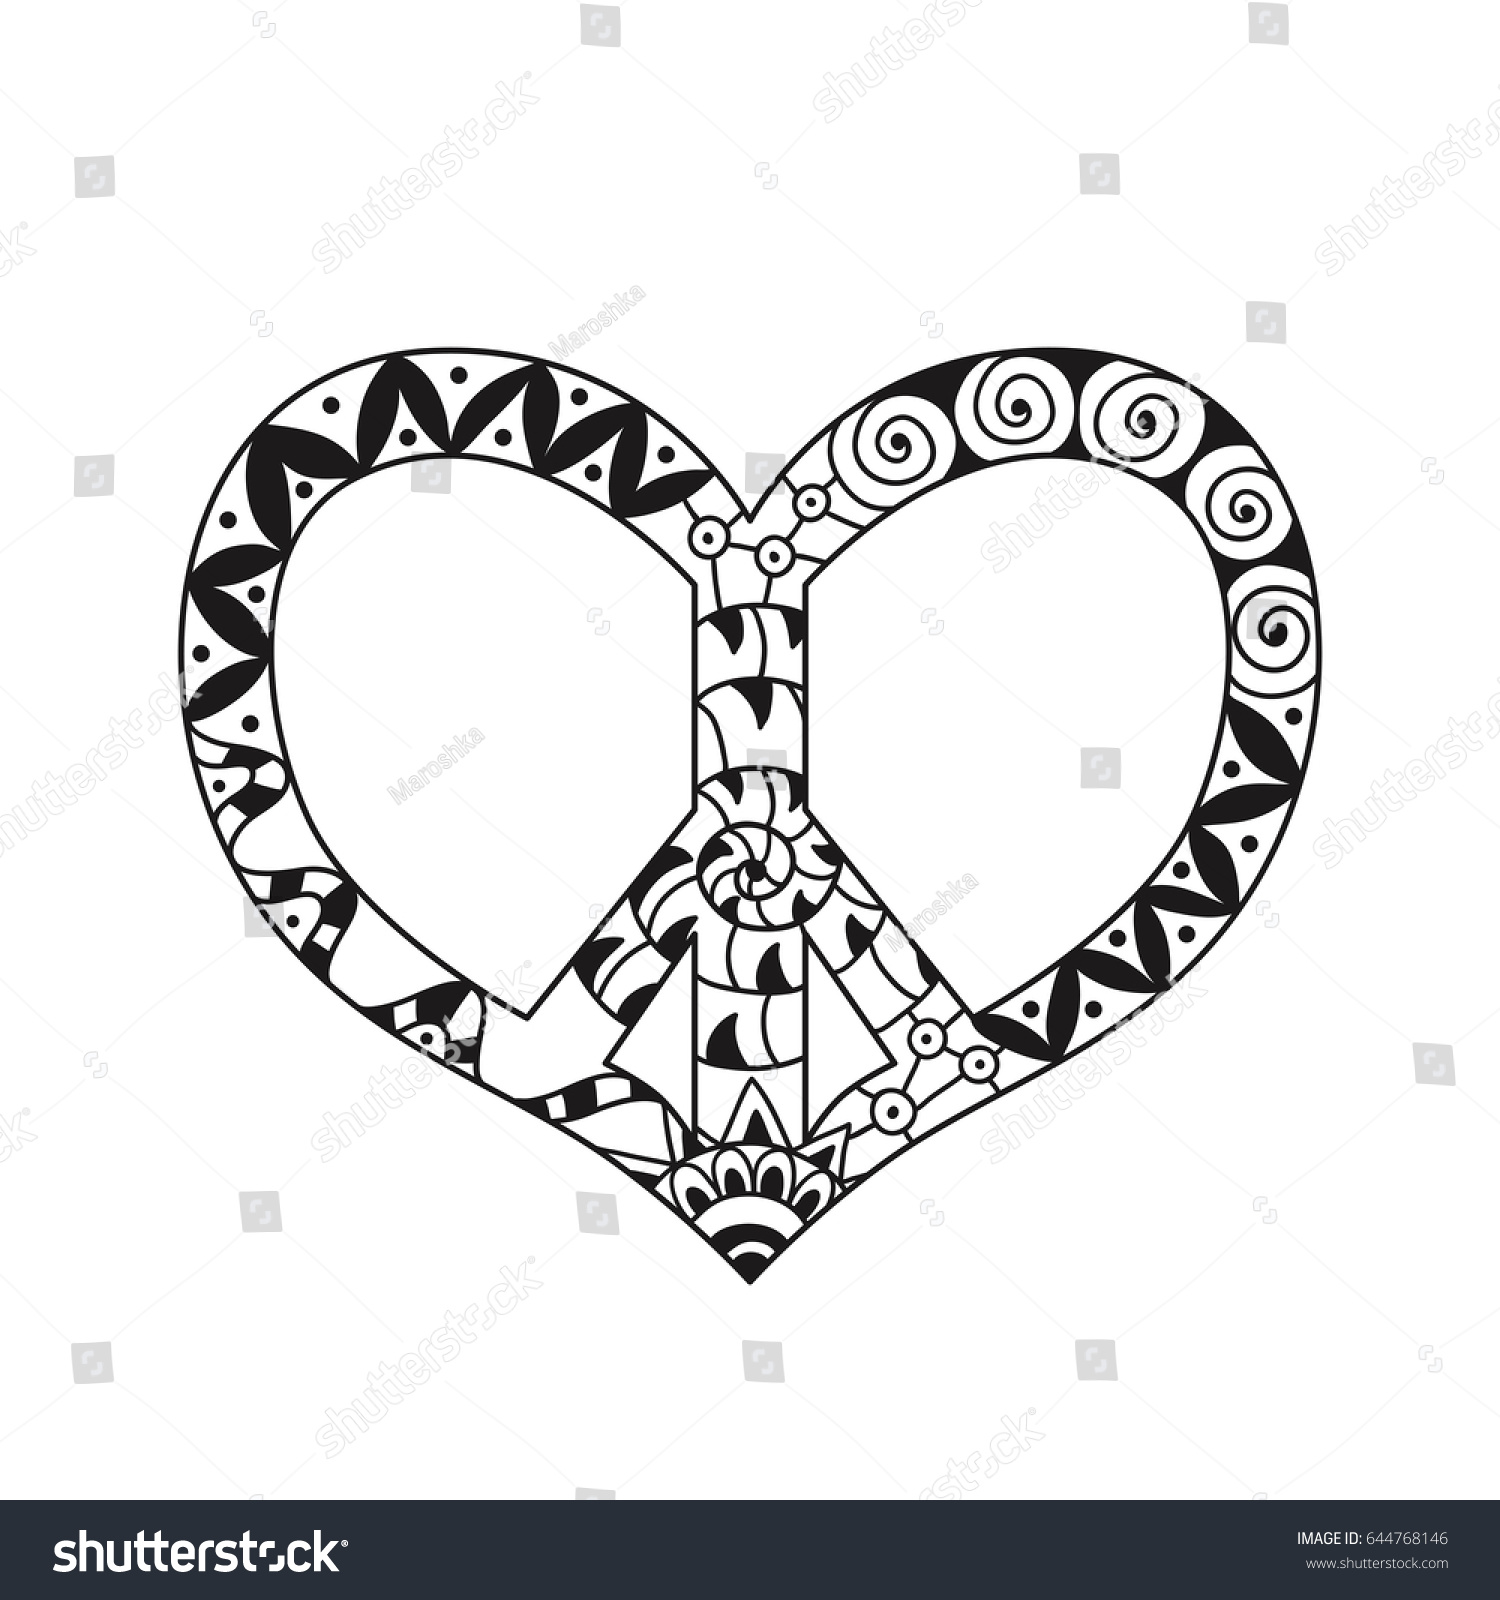 Hand Drawn Hippie Peace Symbol Heart Stock Vector 644768146 ...